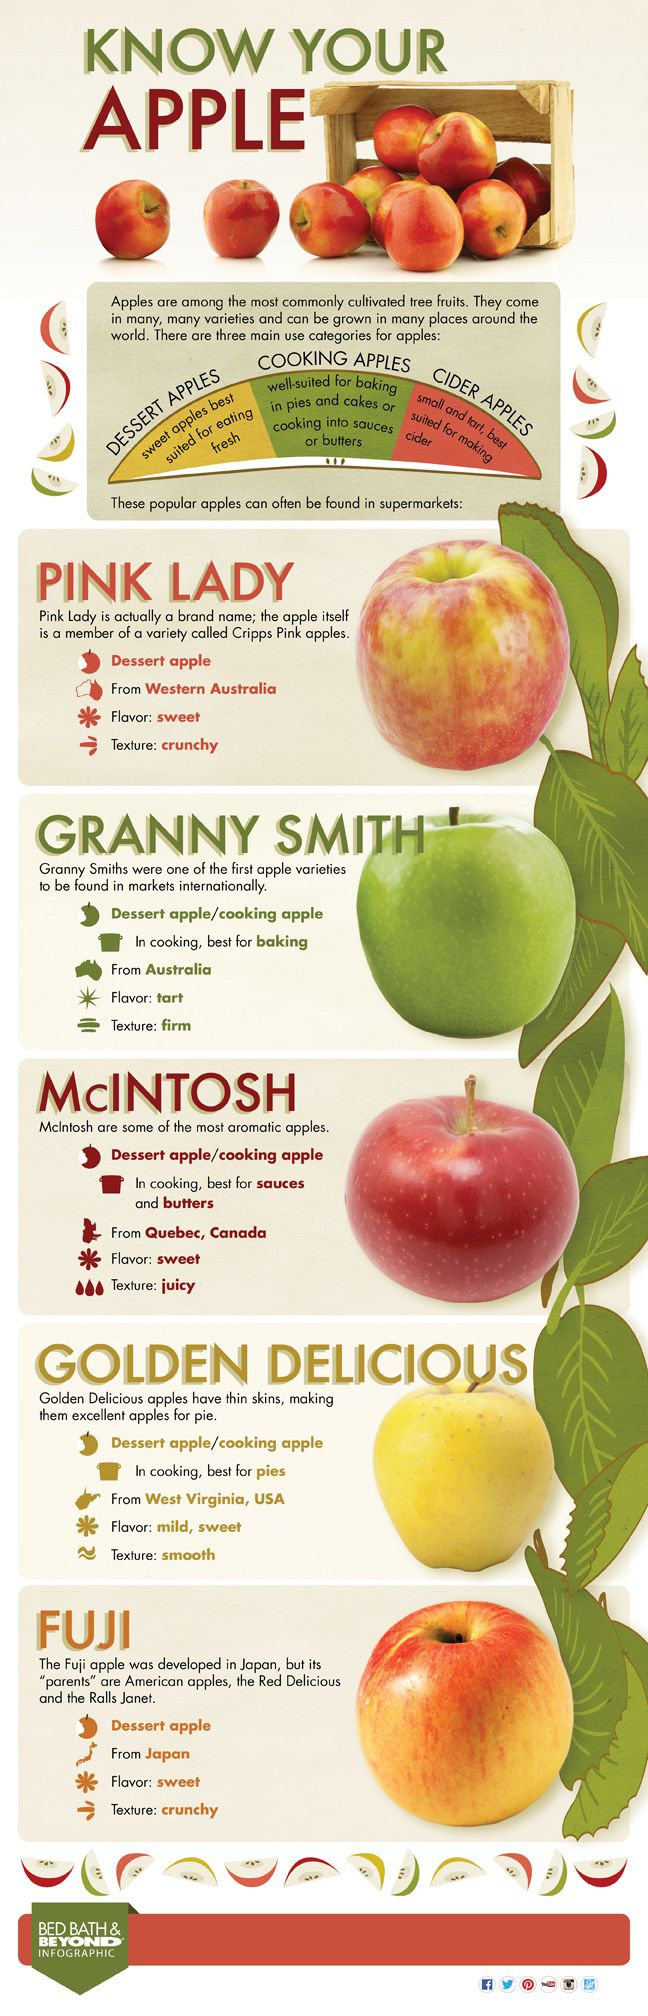 Know Your Apple [Infographic] -Above & BeyondAbove & Beyond | Above & Beyond, the blog from Bed Bath & Beyond, features cooking, recipes, food, entertaining, gift ideas, home decor, organizing advice, and more ideas and inspiration!